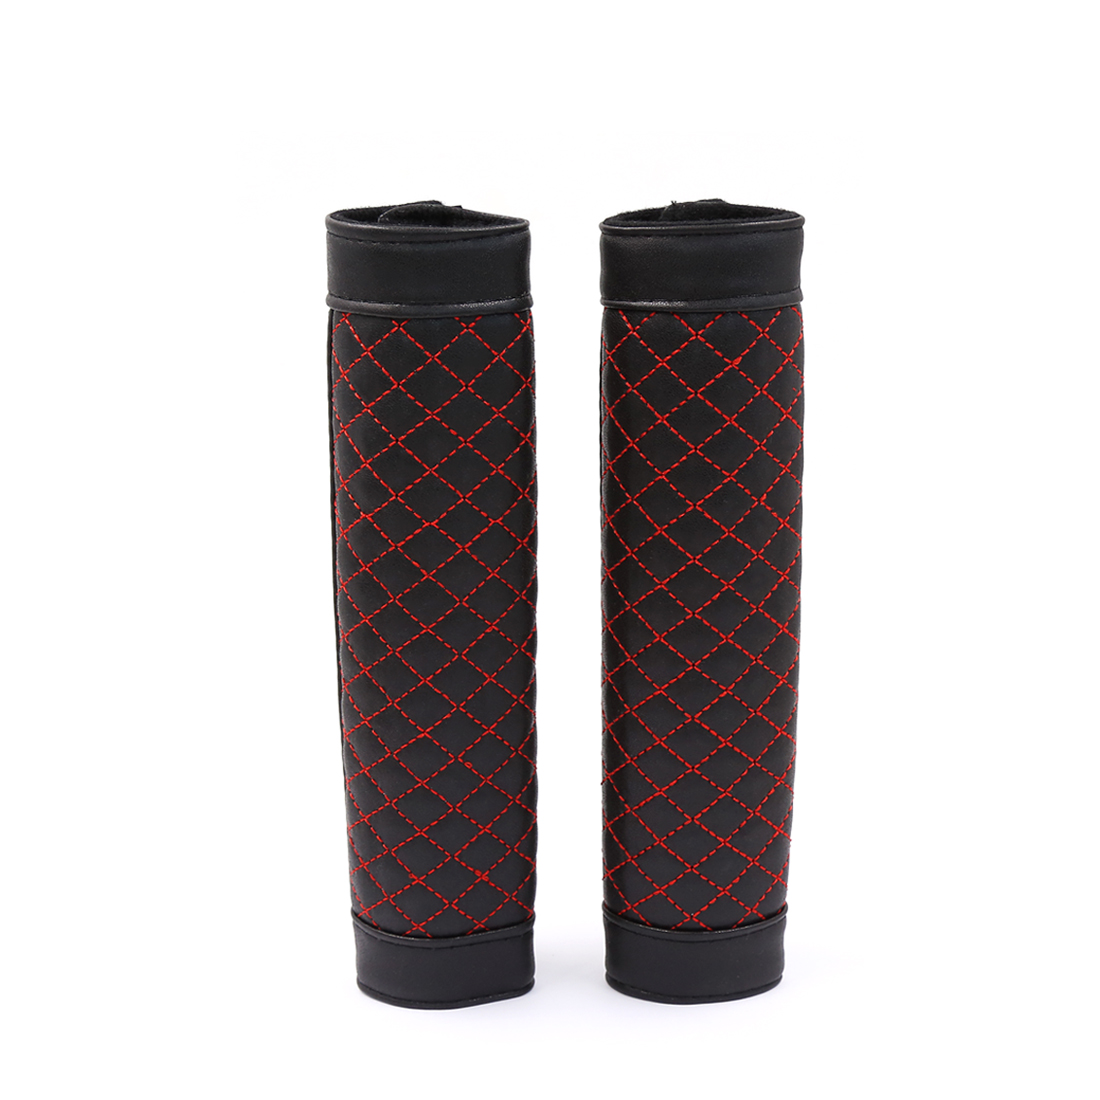 2 Pcs Black Red Grid Patten Nonslip Safety Belt Seatbelt Cover Sleeve for Car